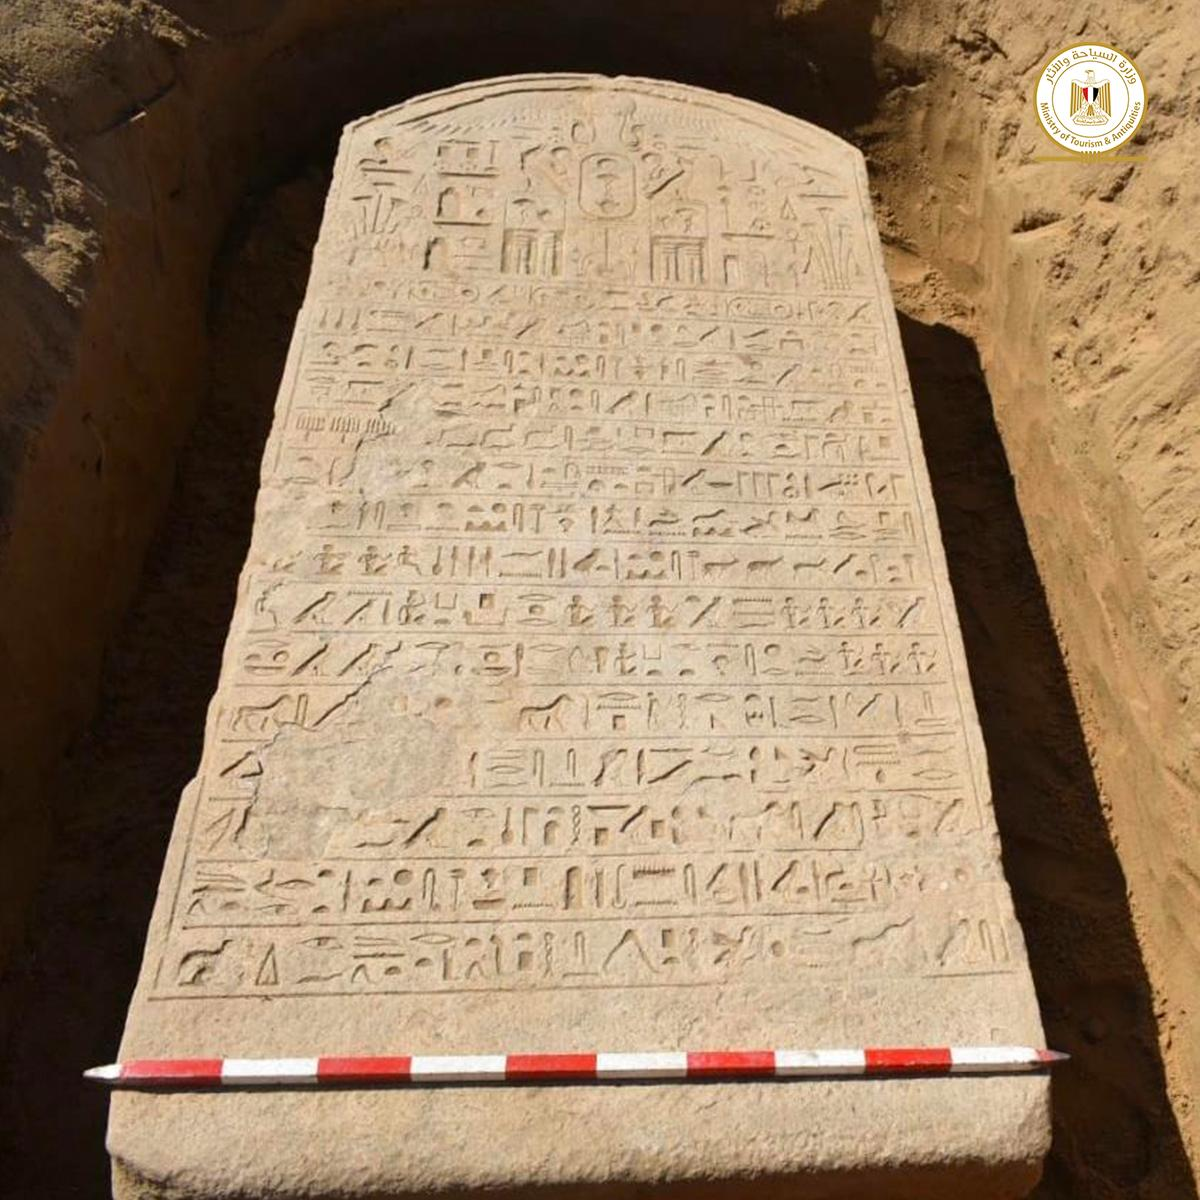 26th-Dynasty Stela Unearthed in Egypt - Archaeology Magazine